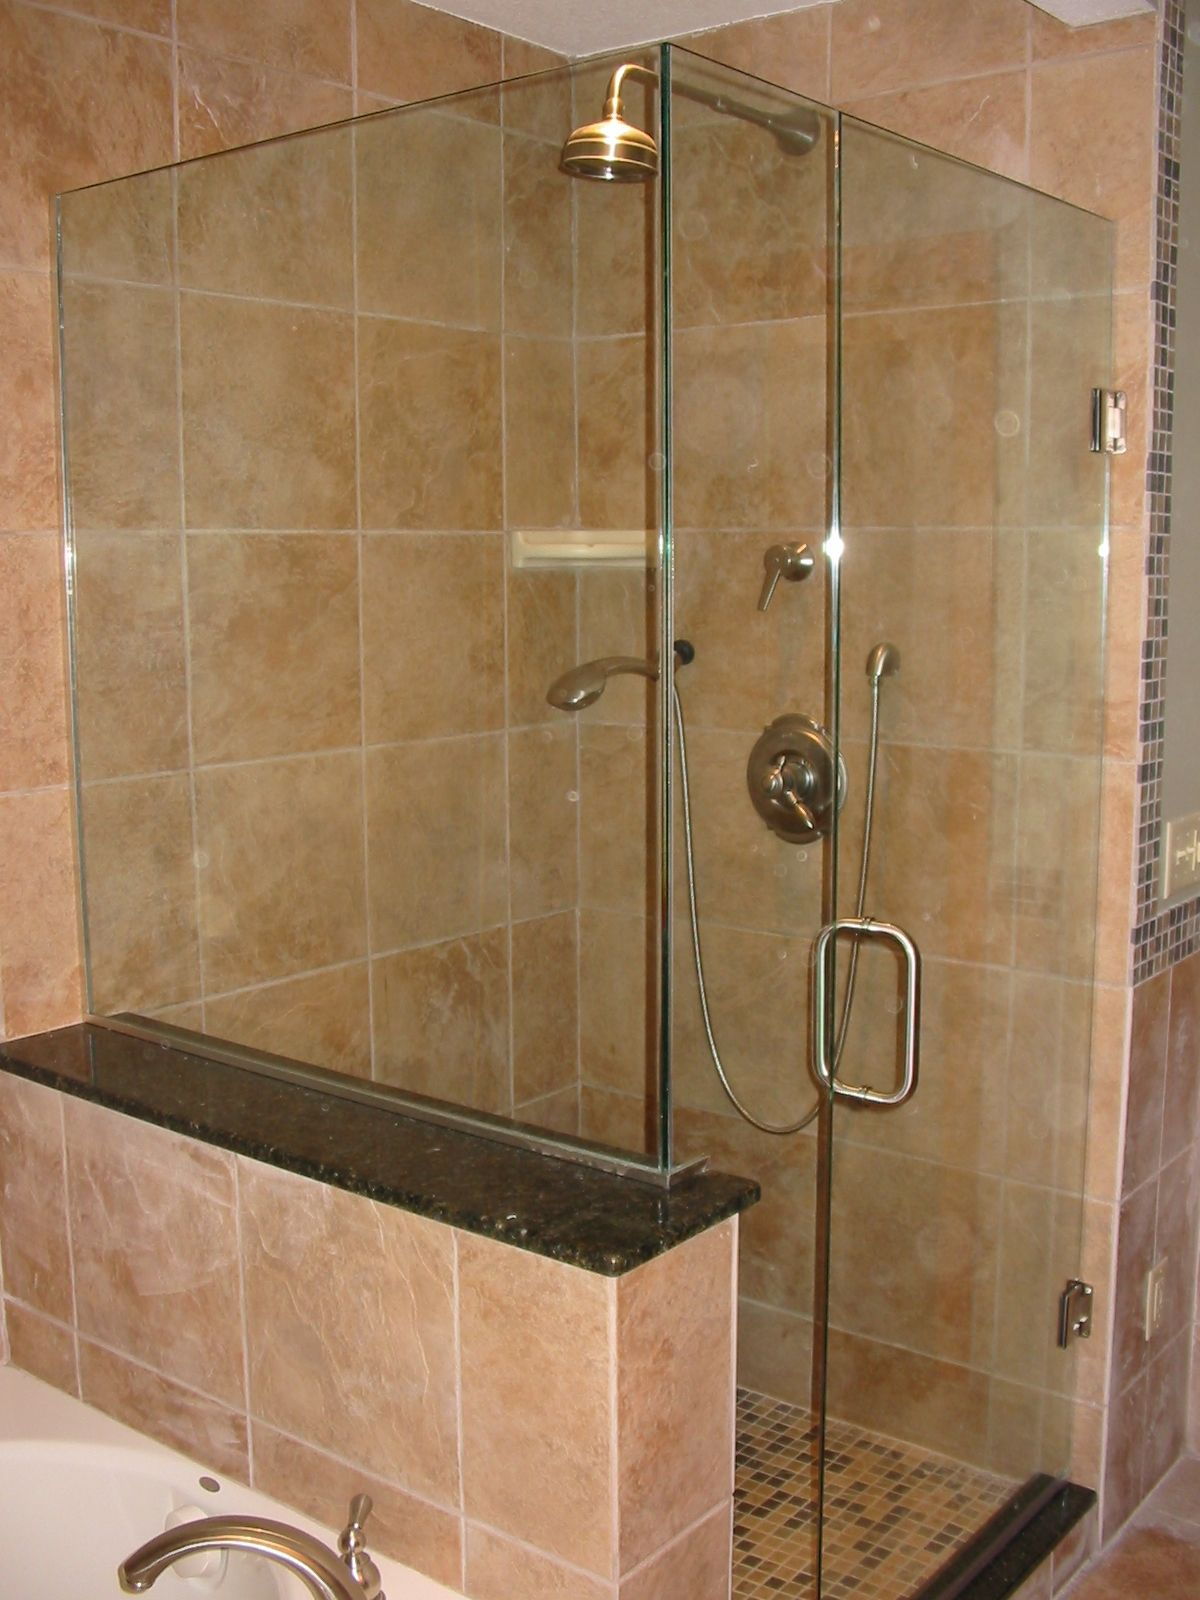 Small Bathroom No Shower Door luxury frameless glass shower door | are frameless glass shower